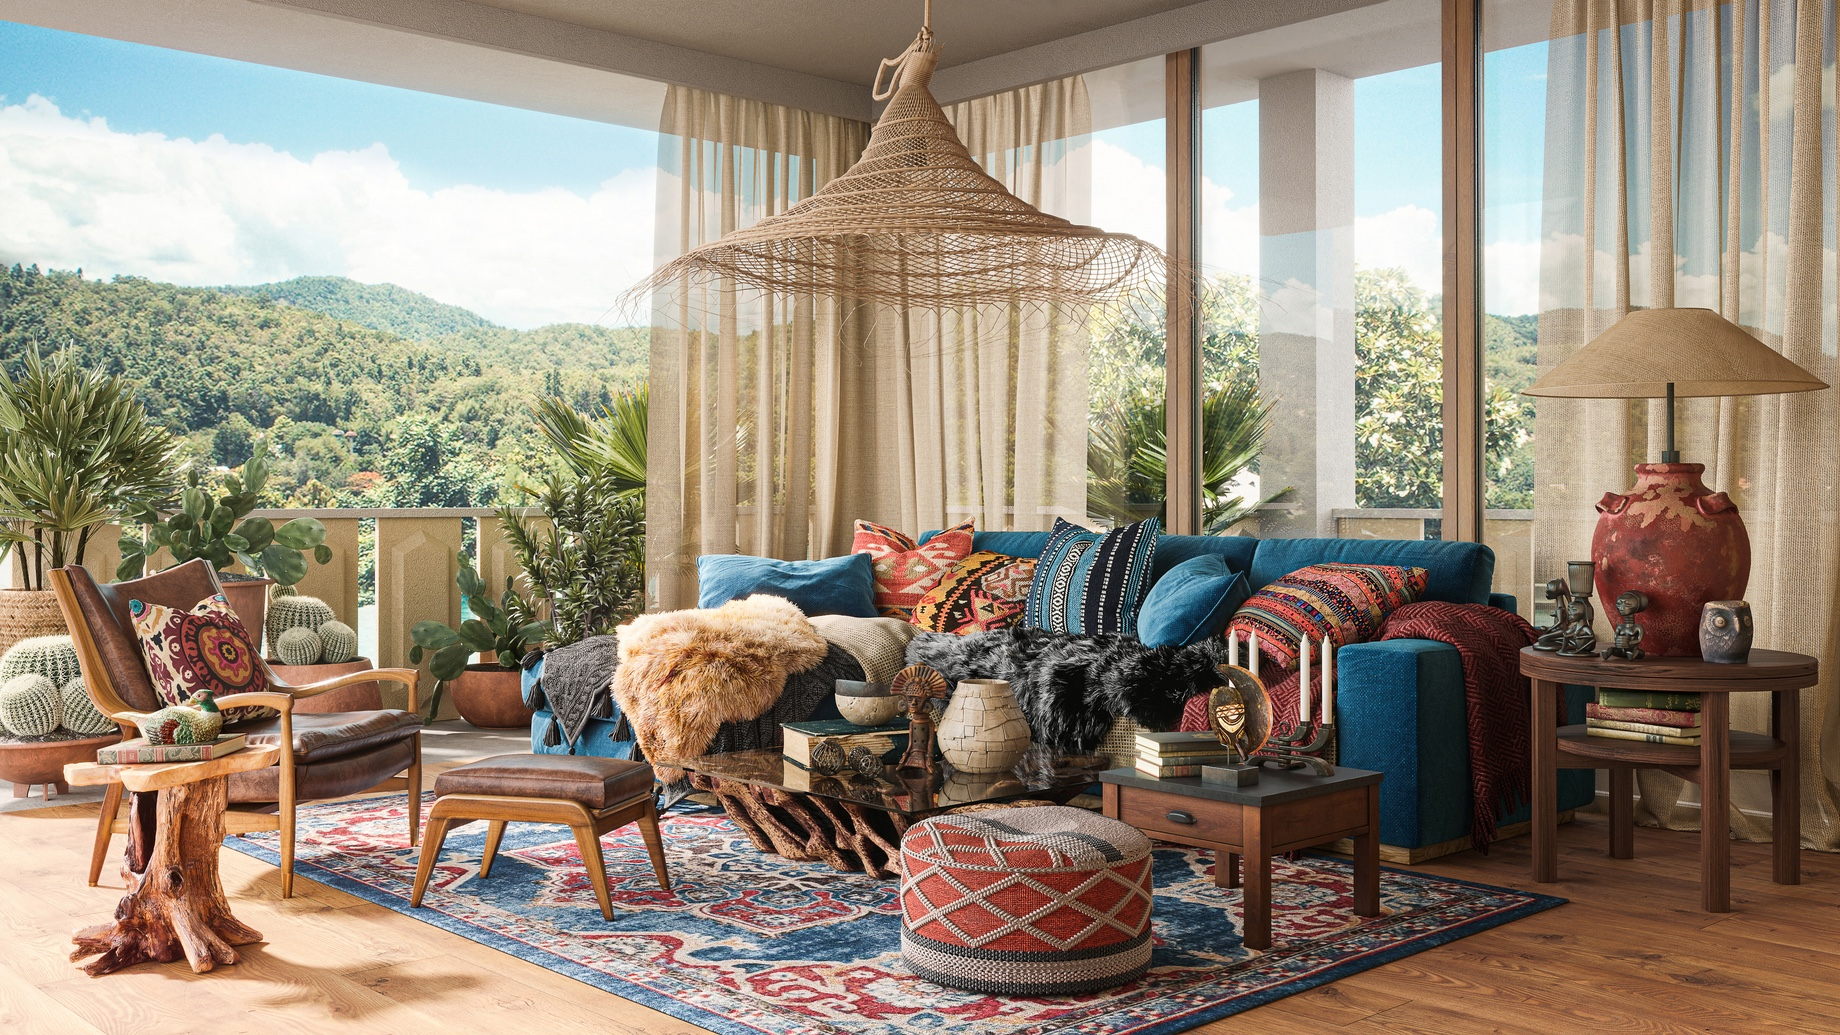 Eclectic Styles - Top 6 Interior Design Trends for Luxury Living in California